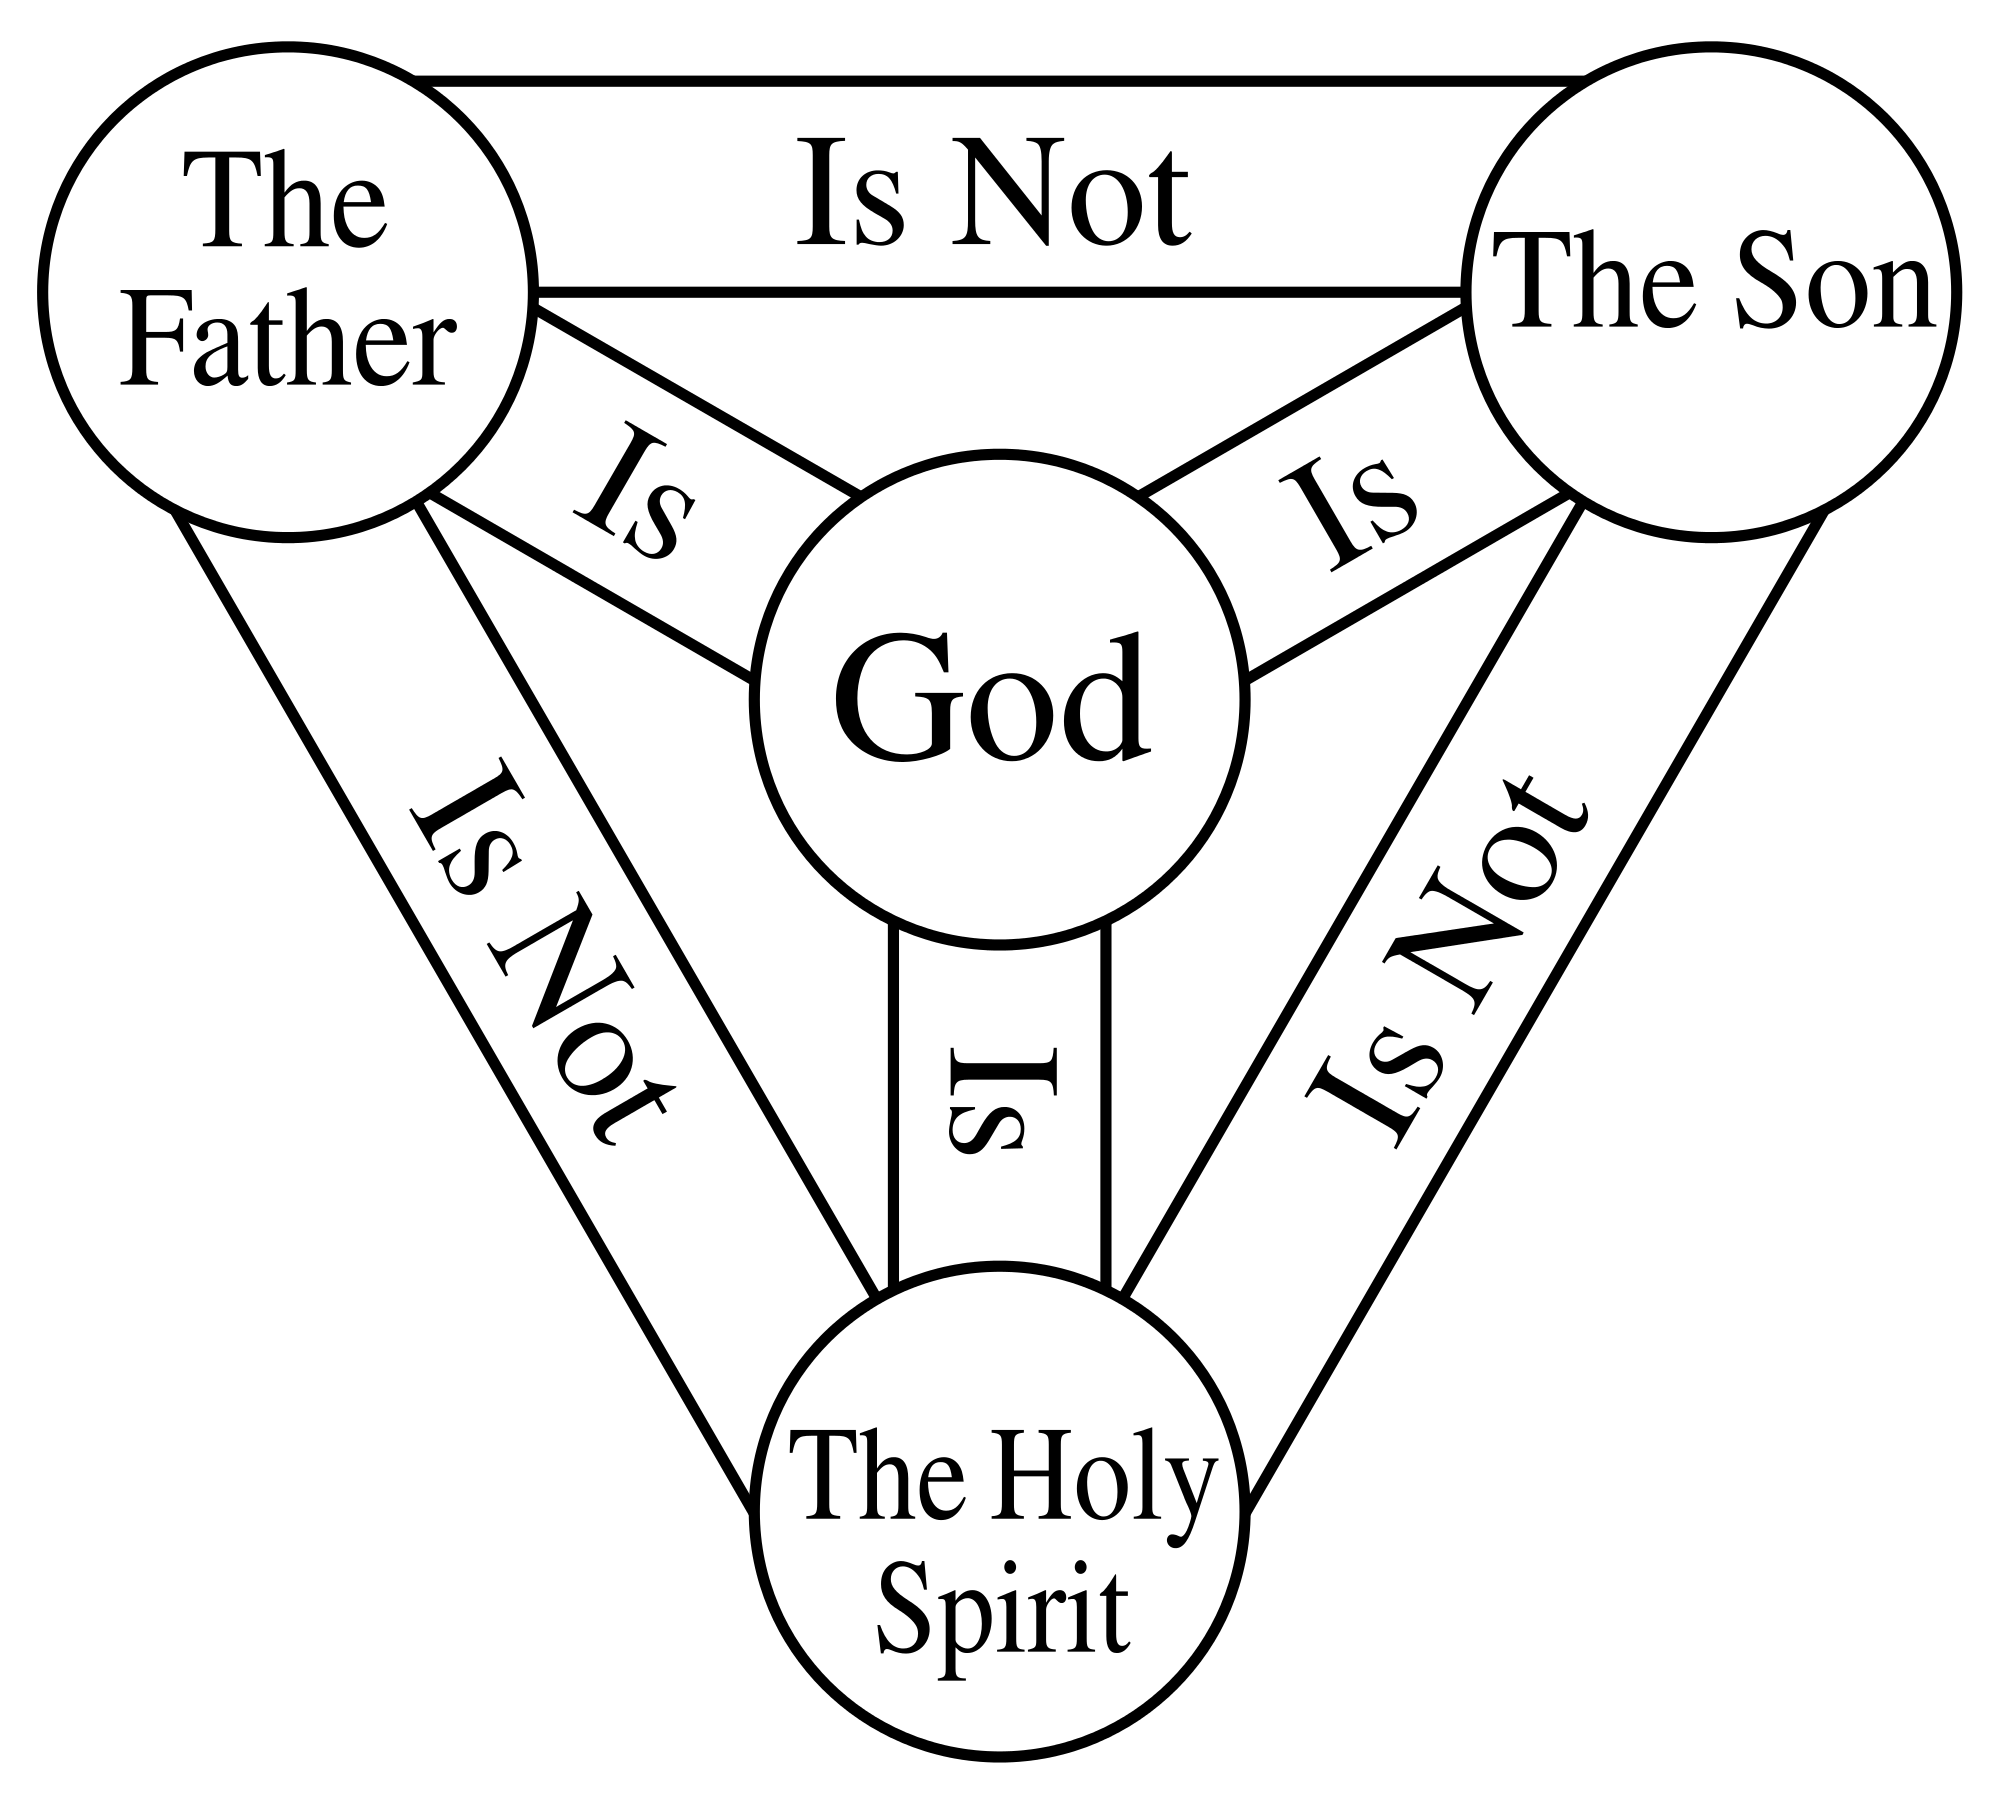 HE IS: God Is, Jesus Is, The Holy Spirit Is